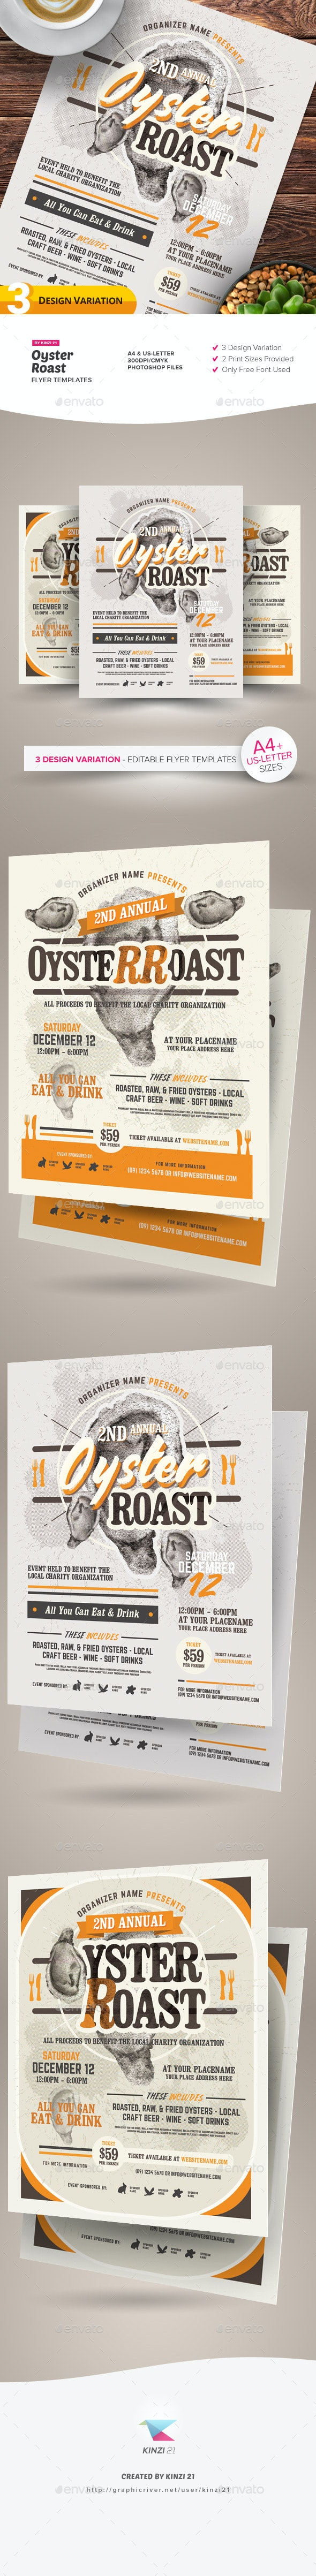 Oyster Roast Flyer Templates - Miscellaneous Events